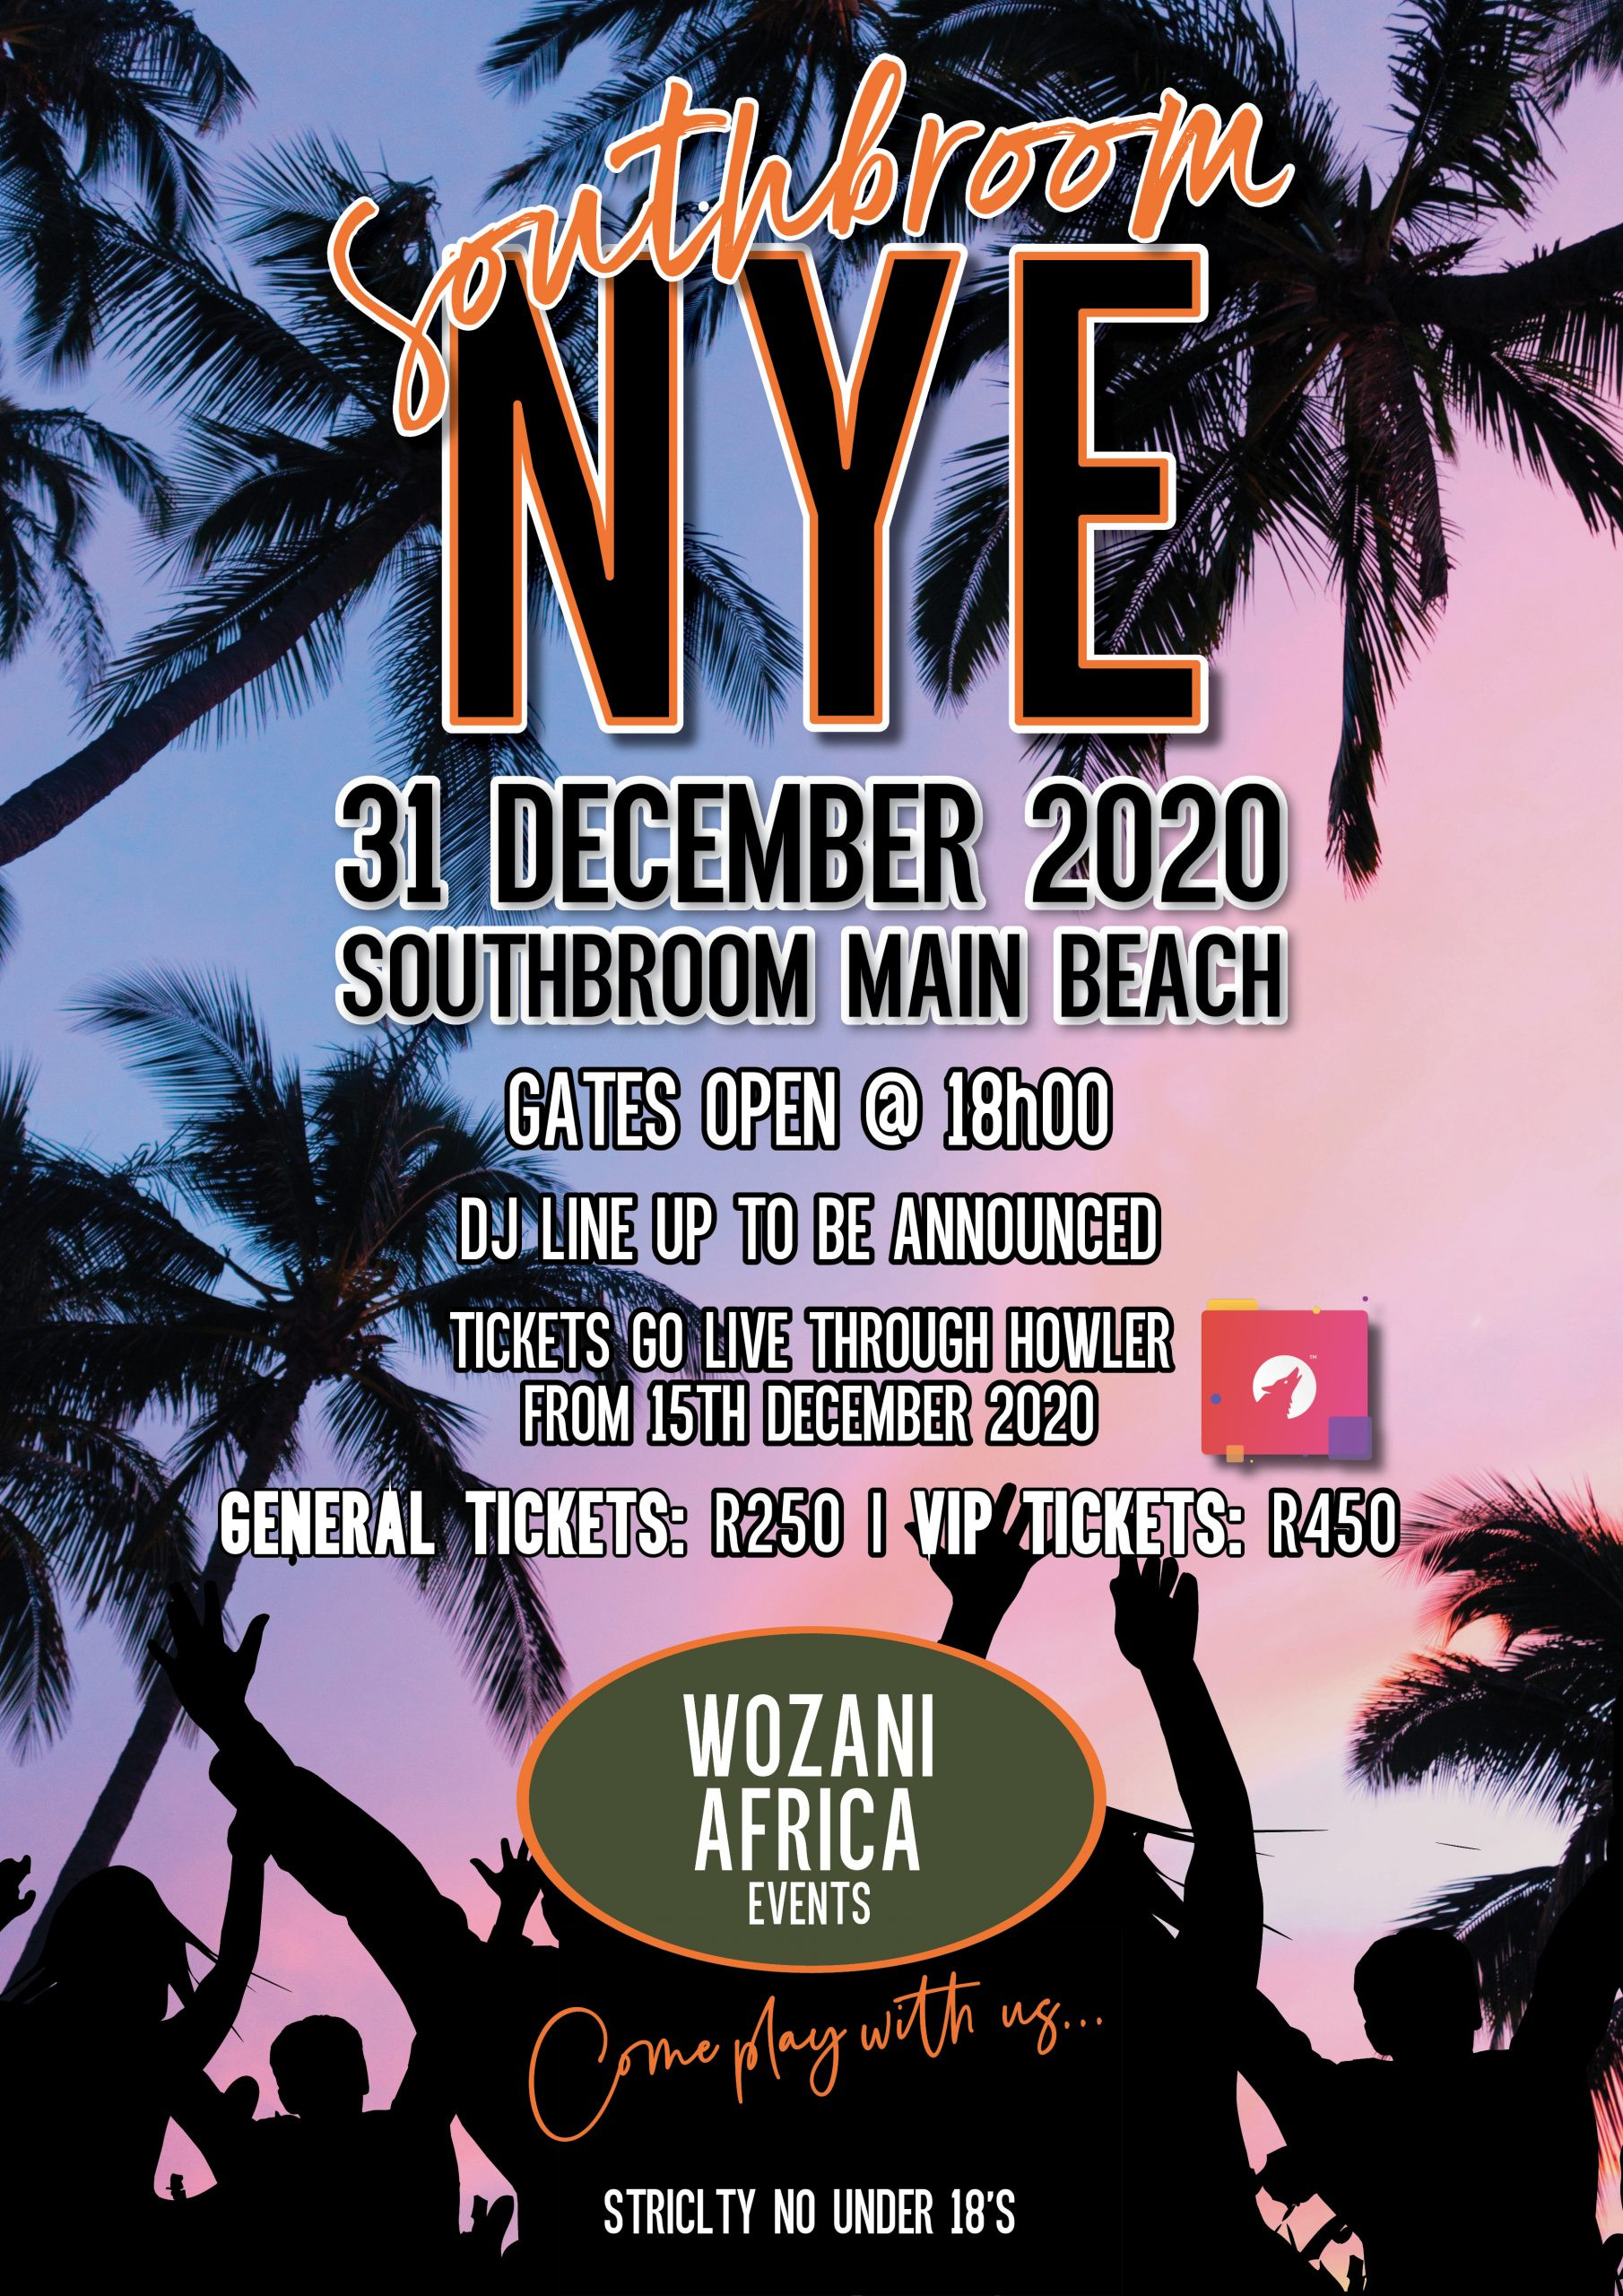 Southbroom New Years Eve 2021 – WOZANI AFRICA EVENTS